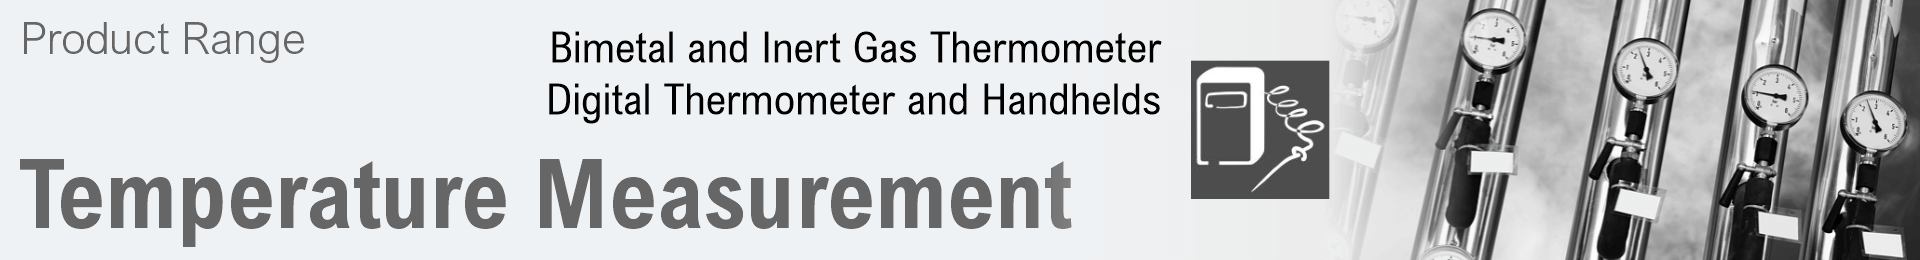 Product range Temperature Measurement: Dial Thermometer, Digital Thermometer, Handheld Thermometer